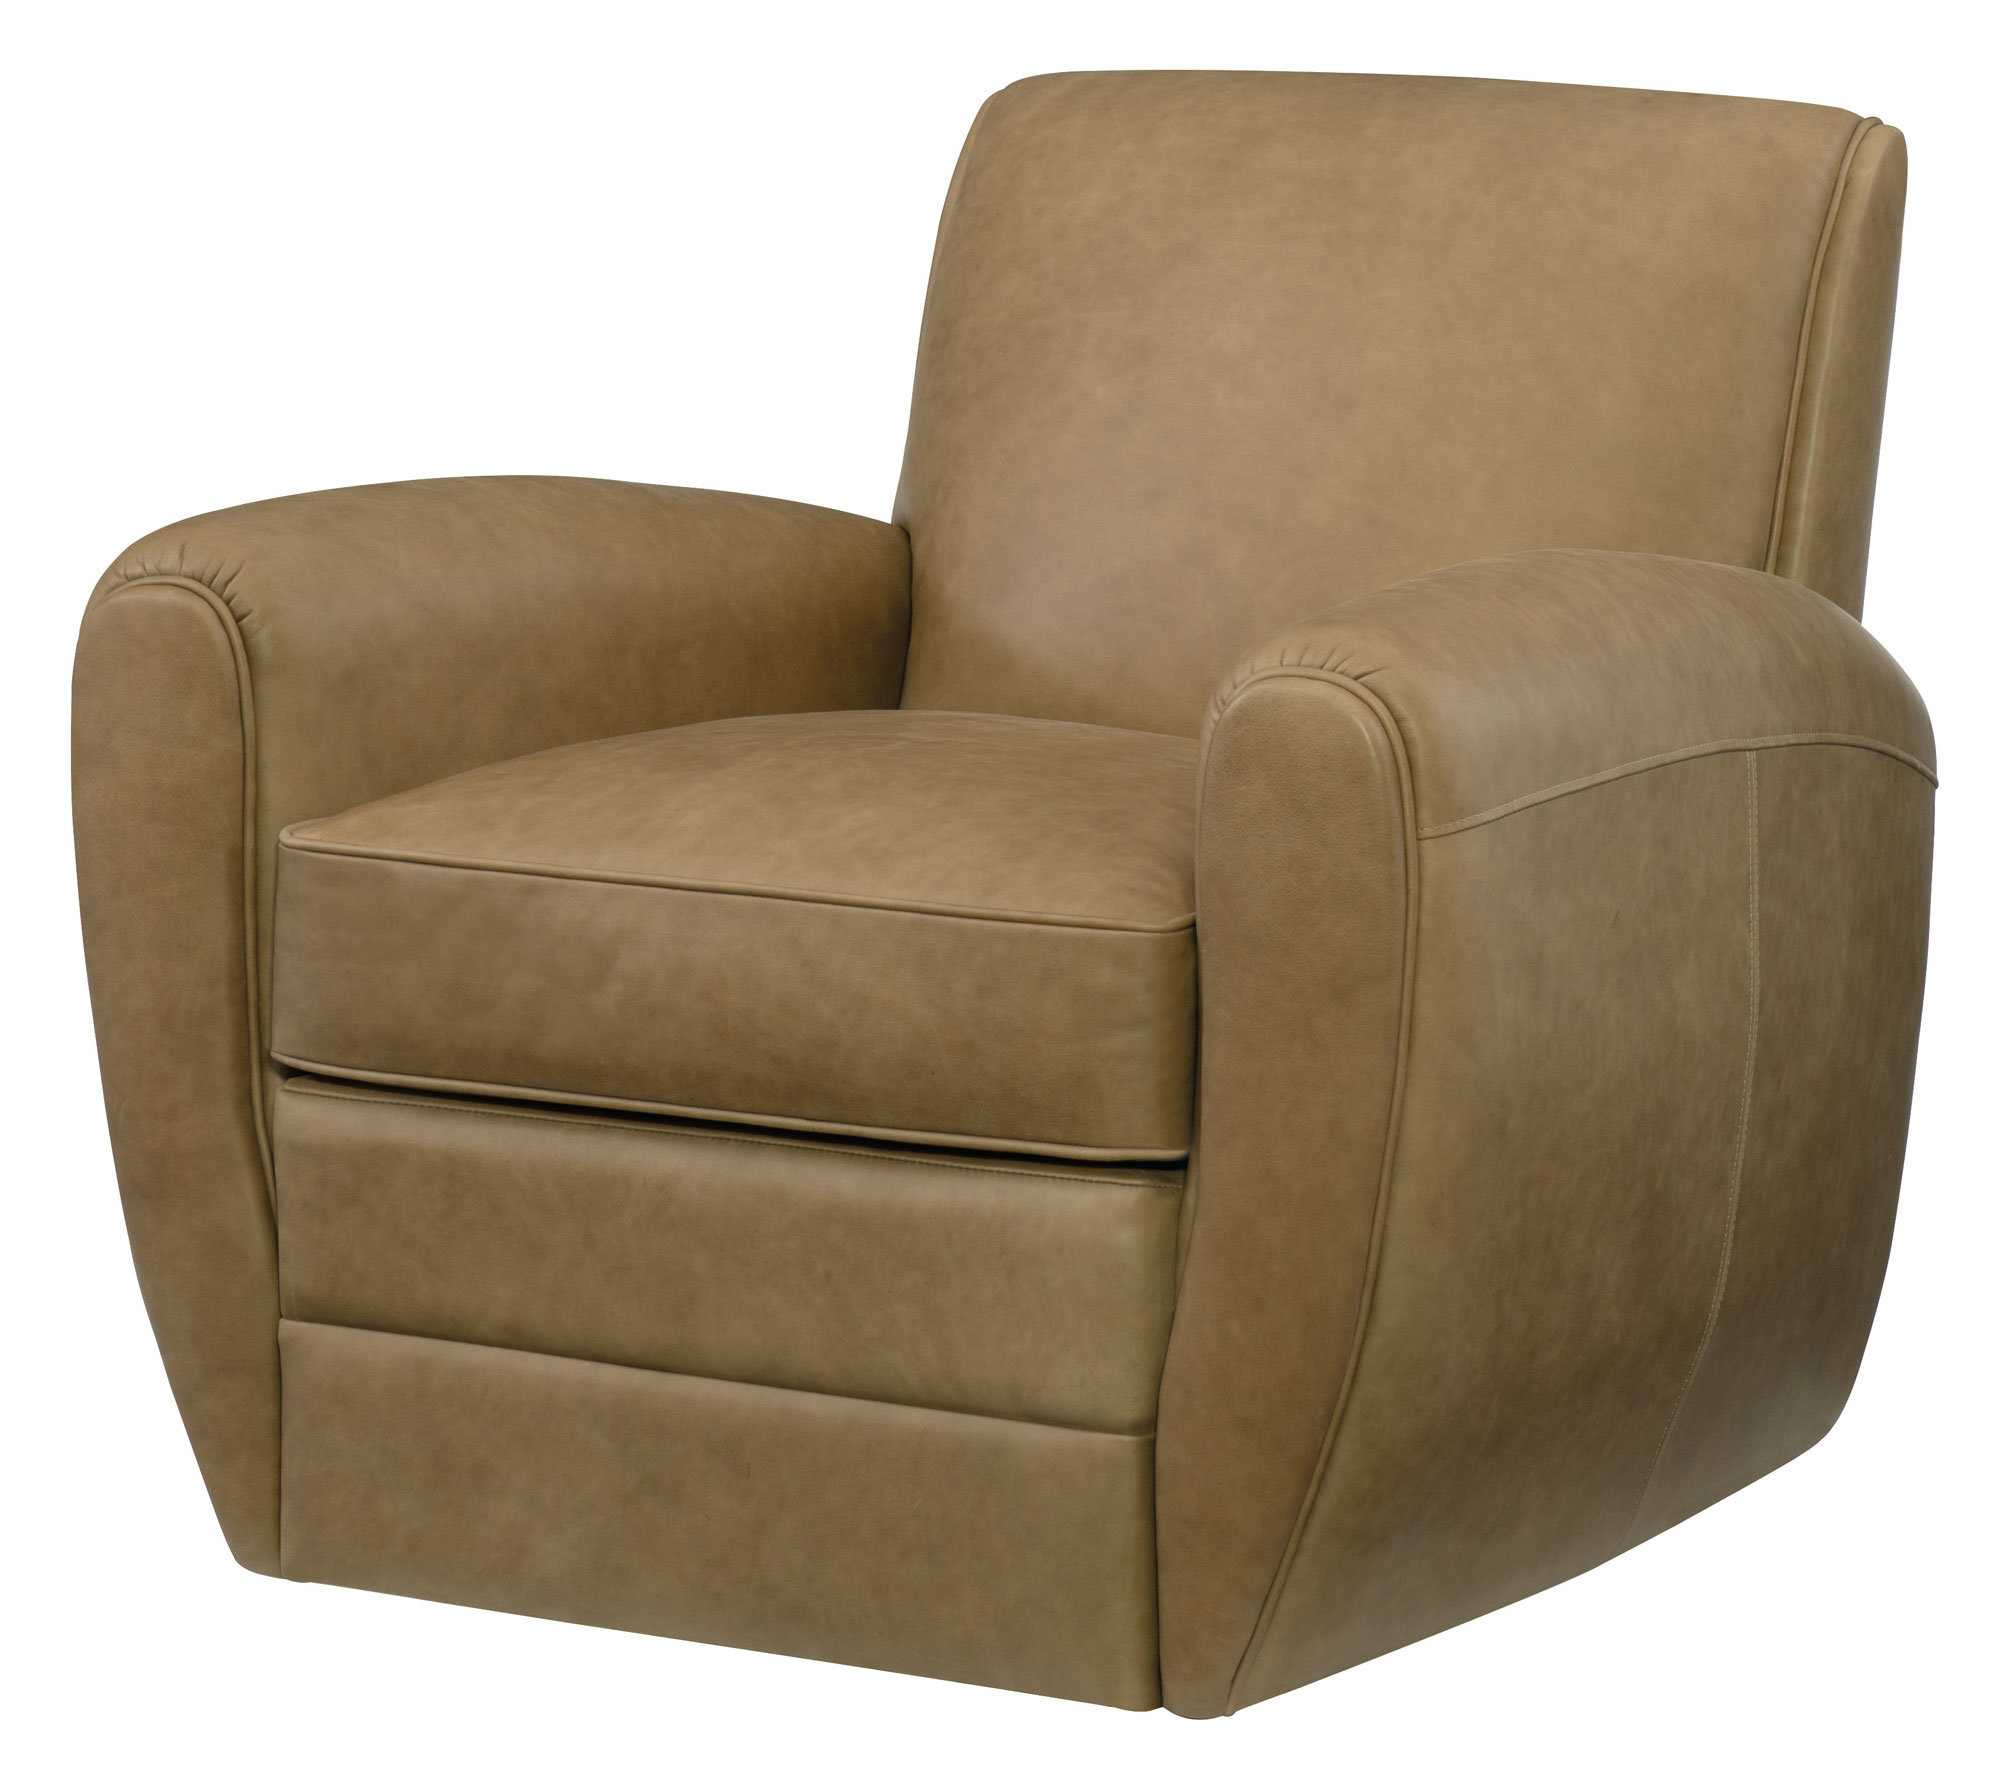 Wayfair Inside Widely Used Swivel Tobacco Leather Chairs (View 7 of 20)